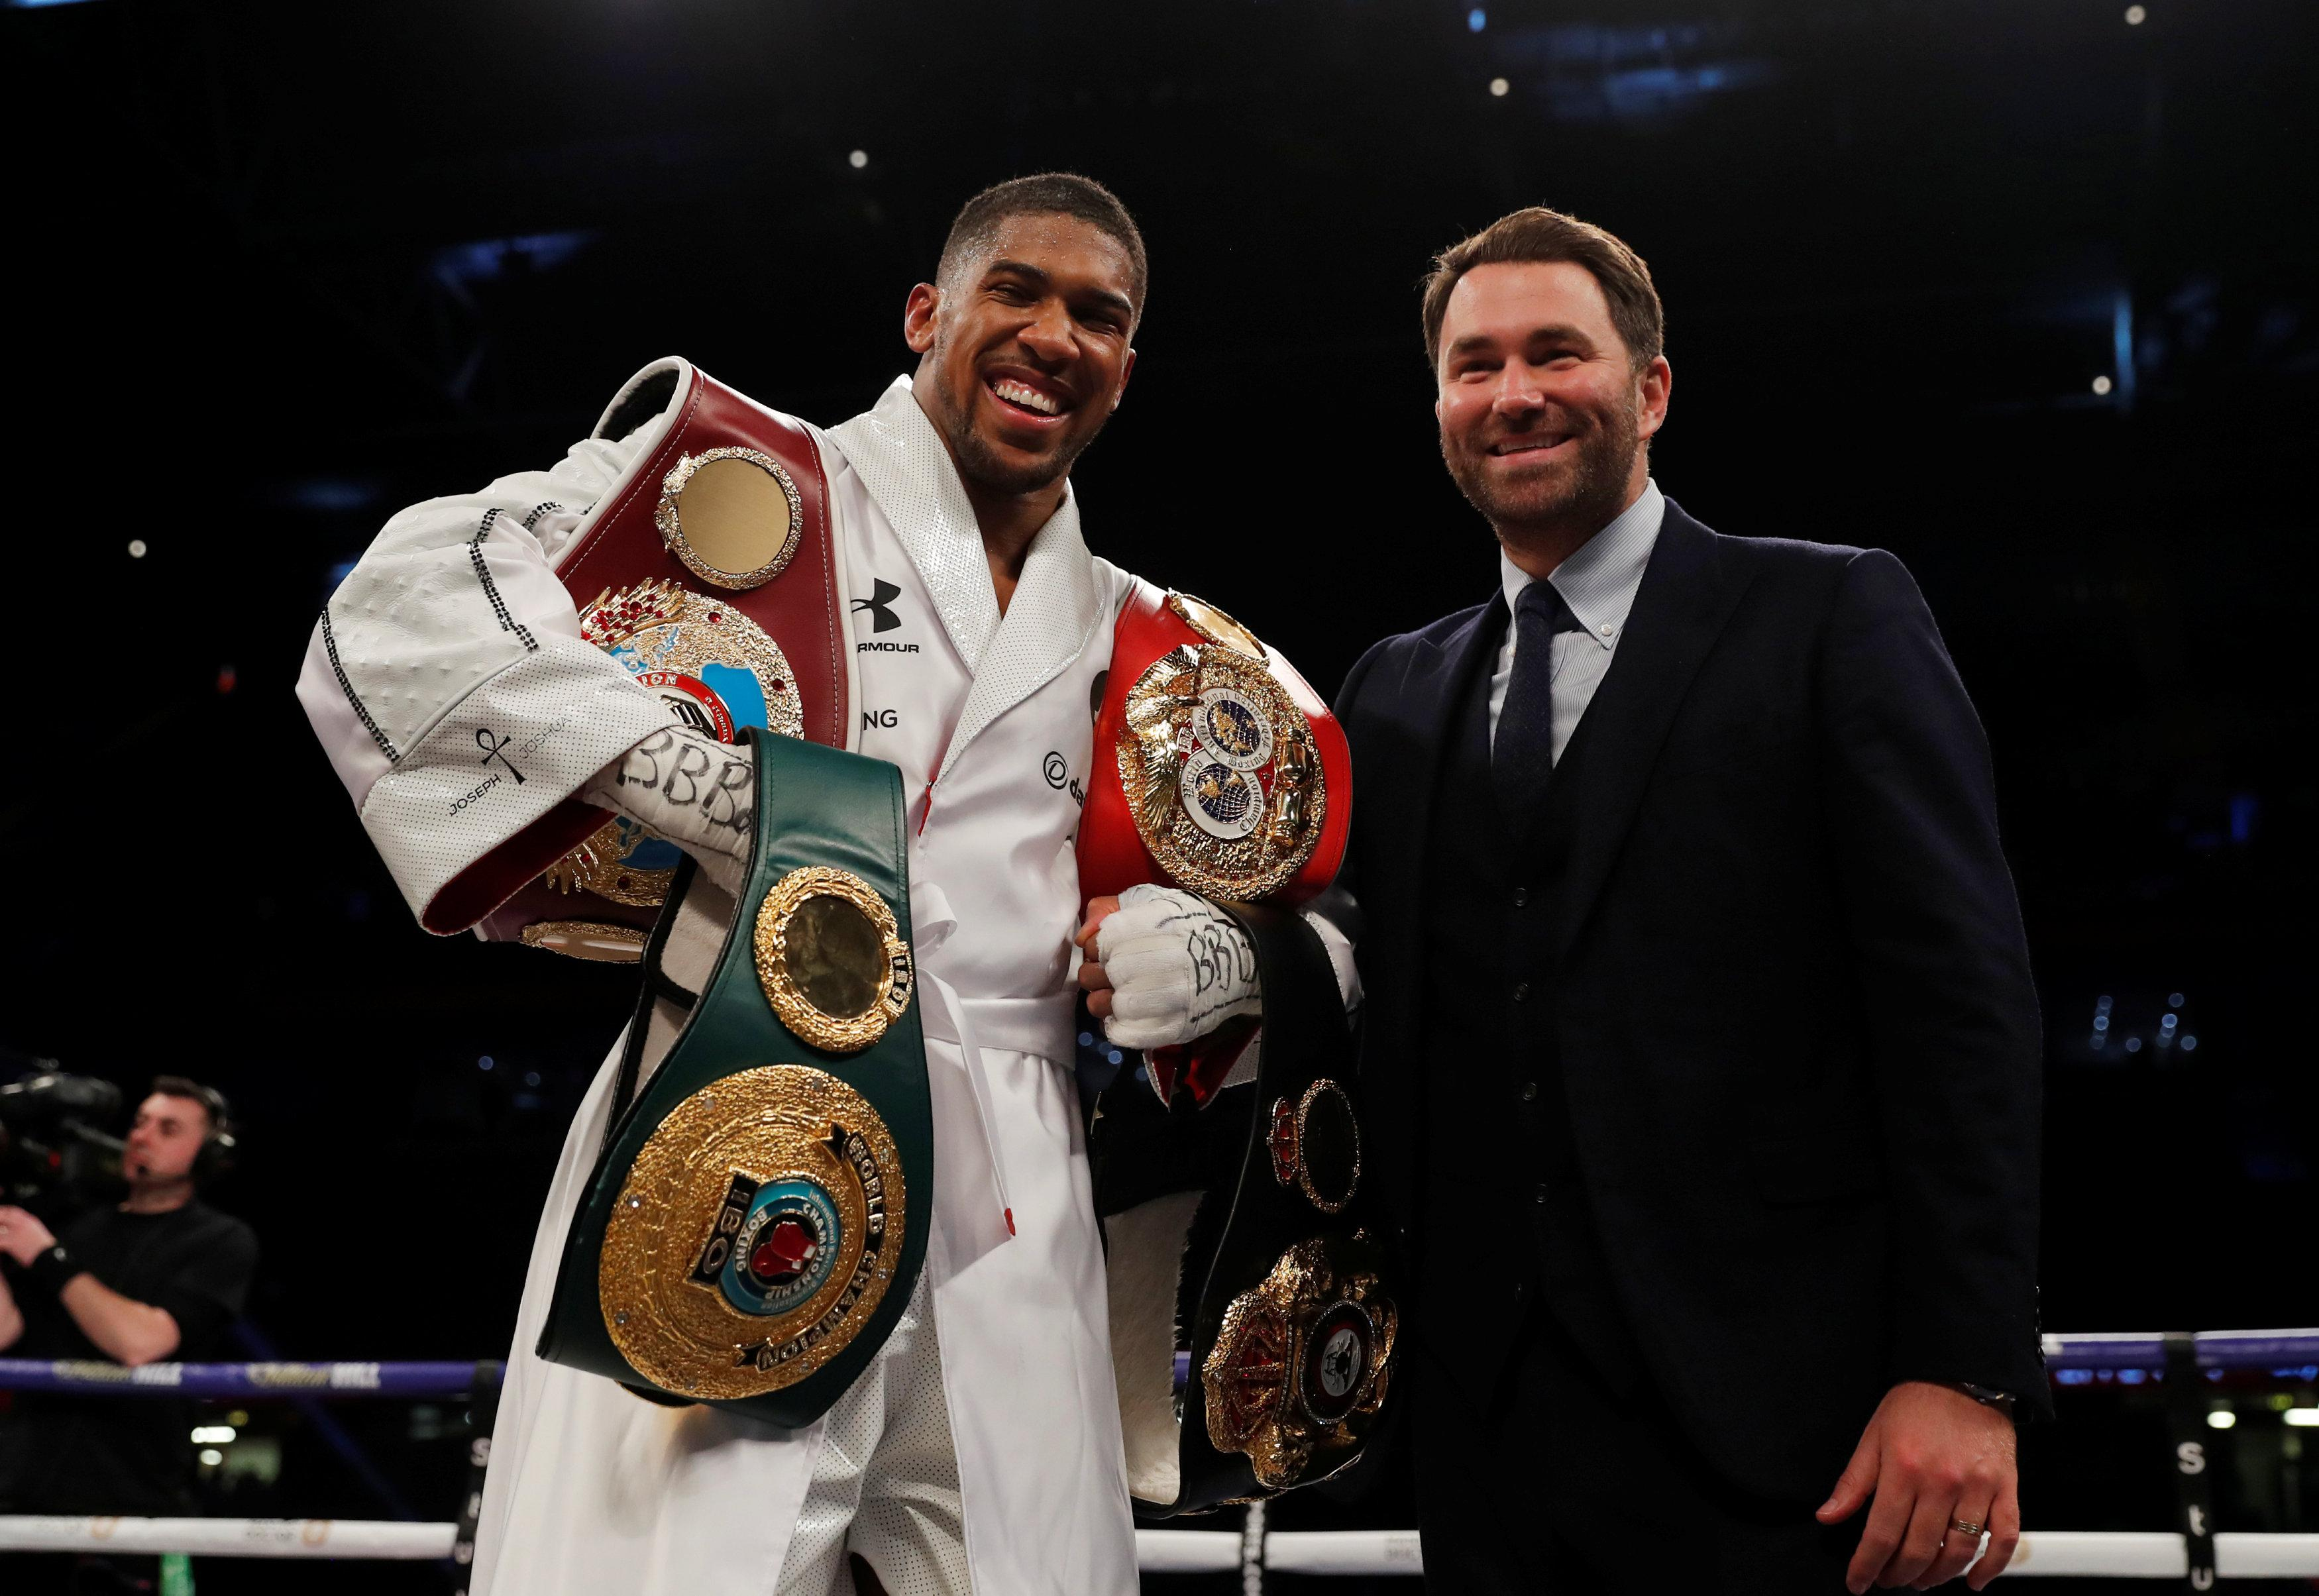 Eddie Hearn believes AJ is more likely to face Russian Povetkin in September rather than Wilder